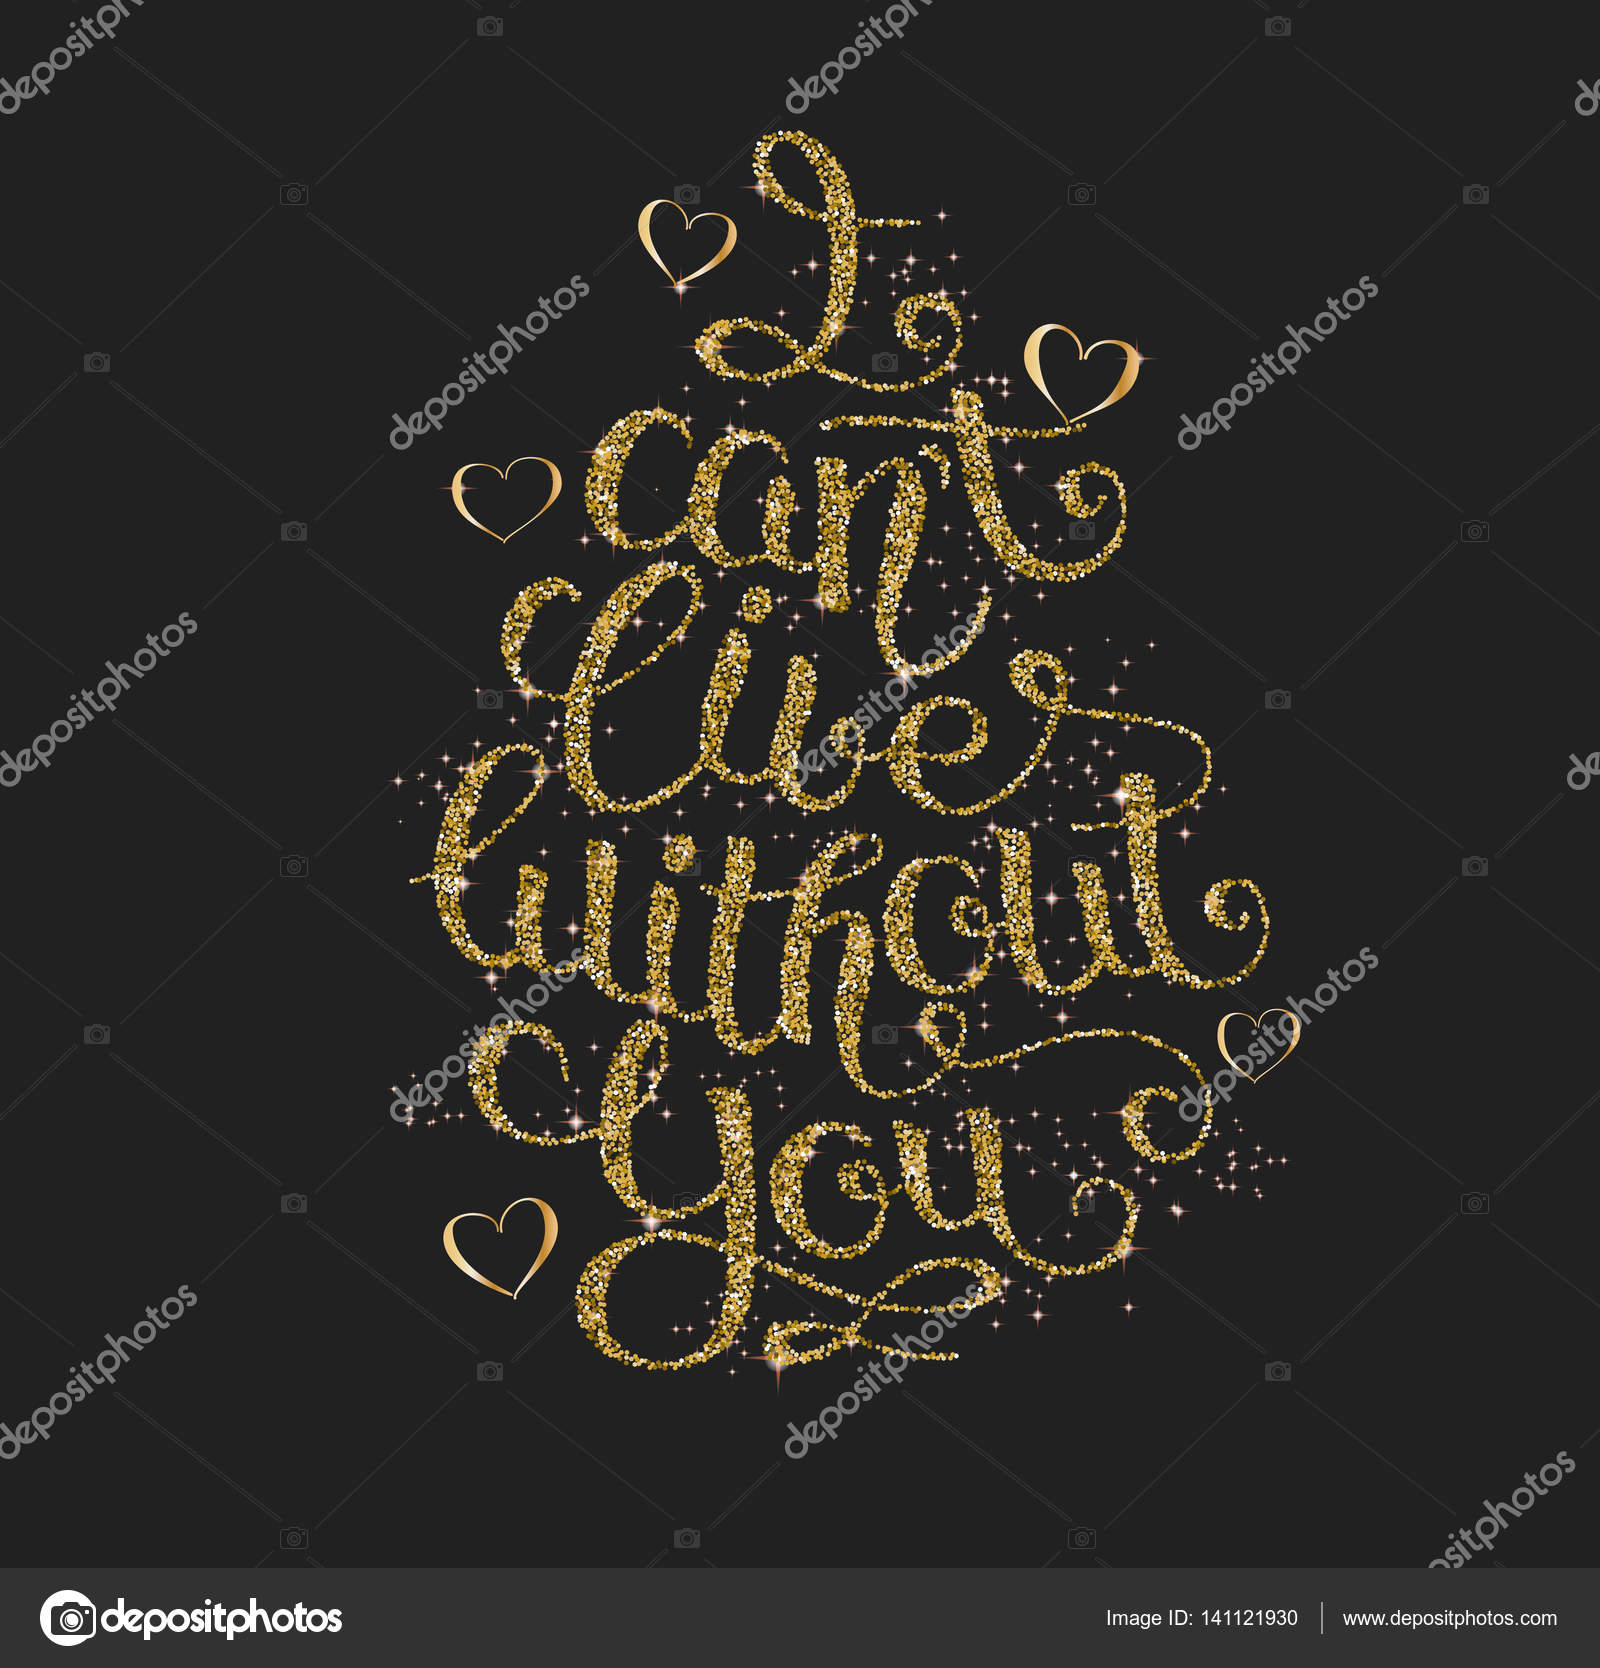 I Cant Live Without You Hand Written Lettering In Golden Dots